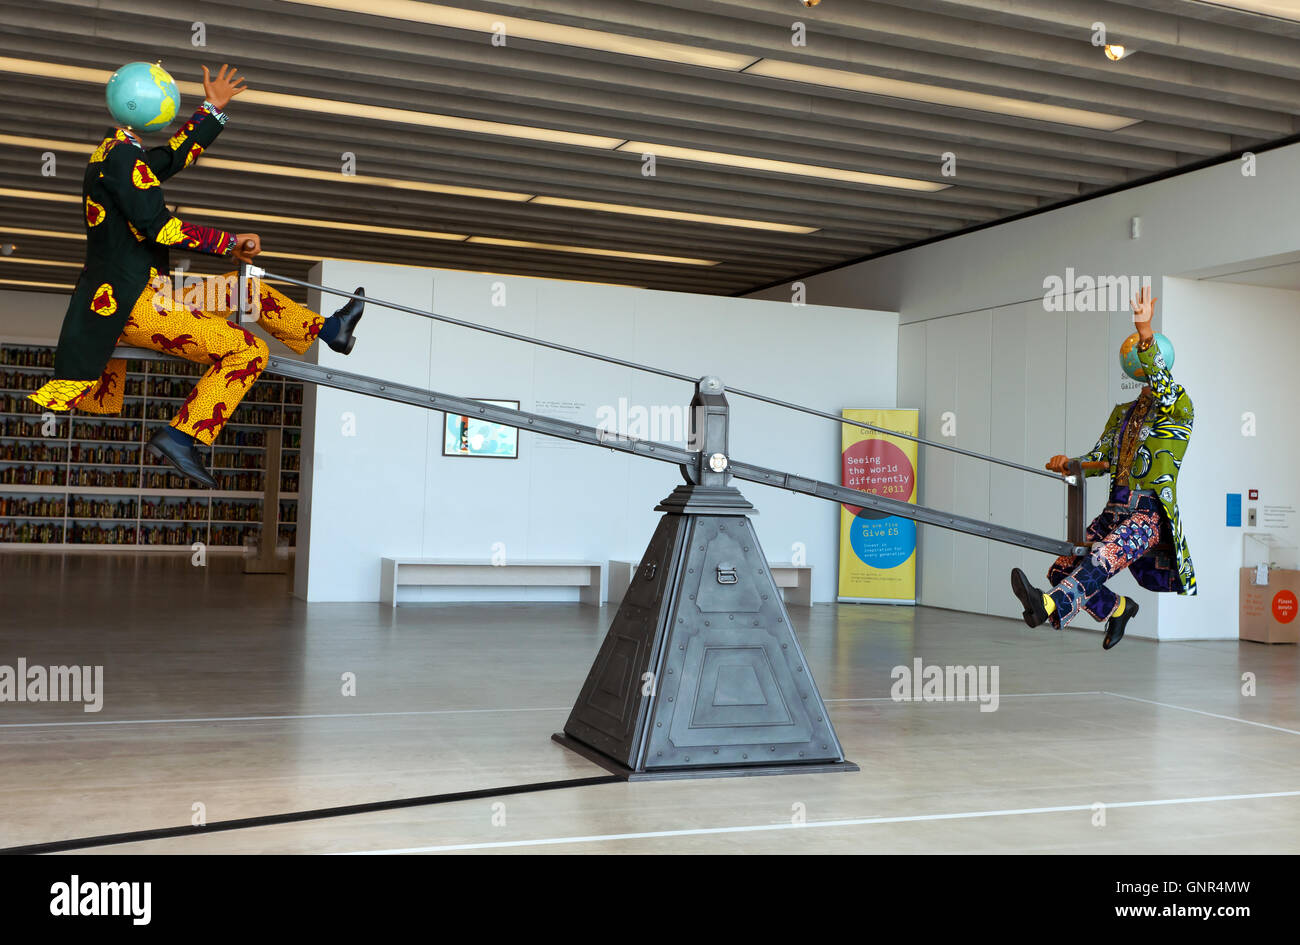 Image showing 'End of Empire' a  Kinetic Sculpture by Yinka Shonibare, in the Sunley Gallery of the Turner - Stock Image